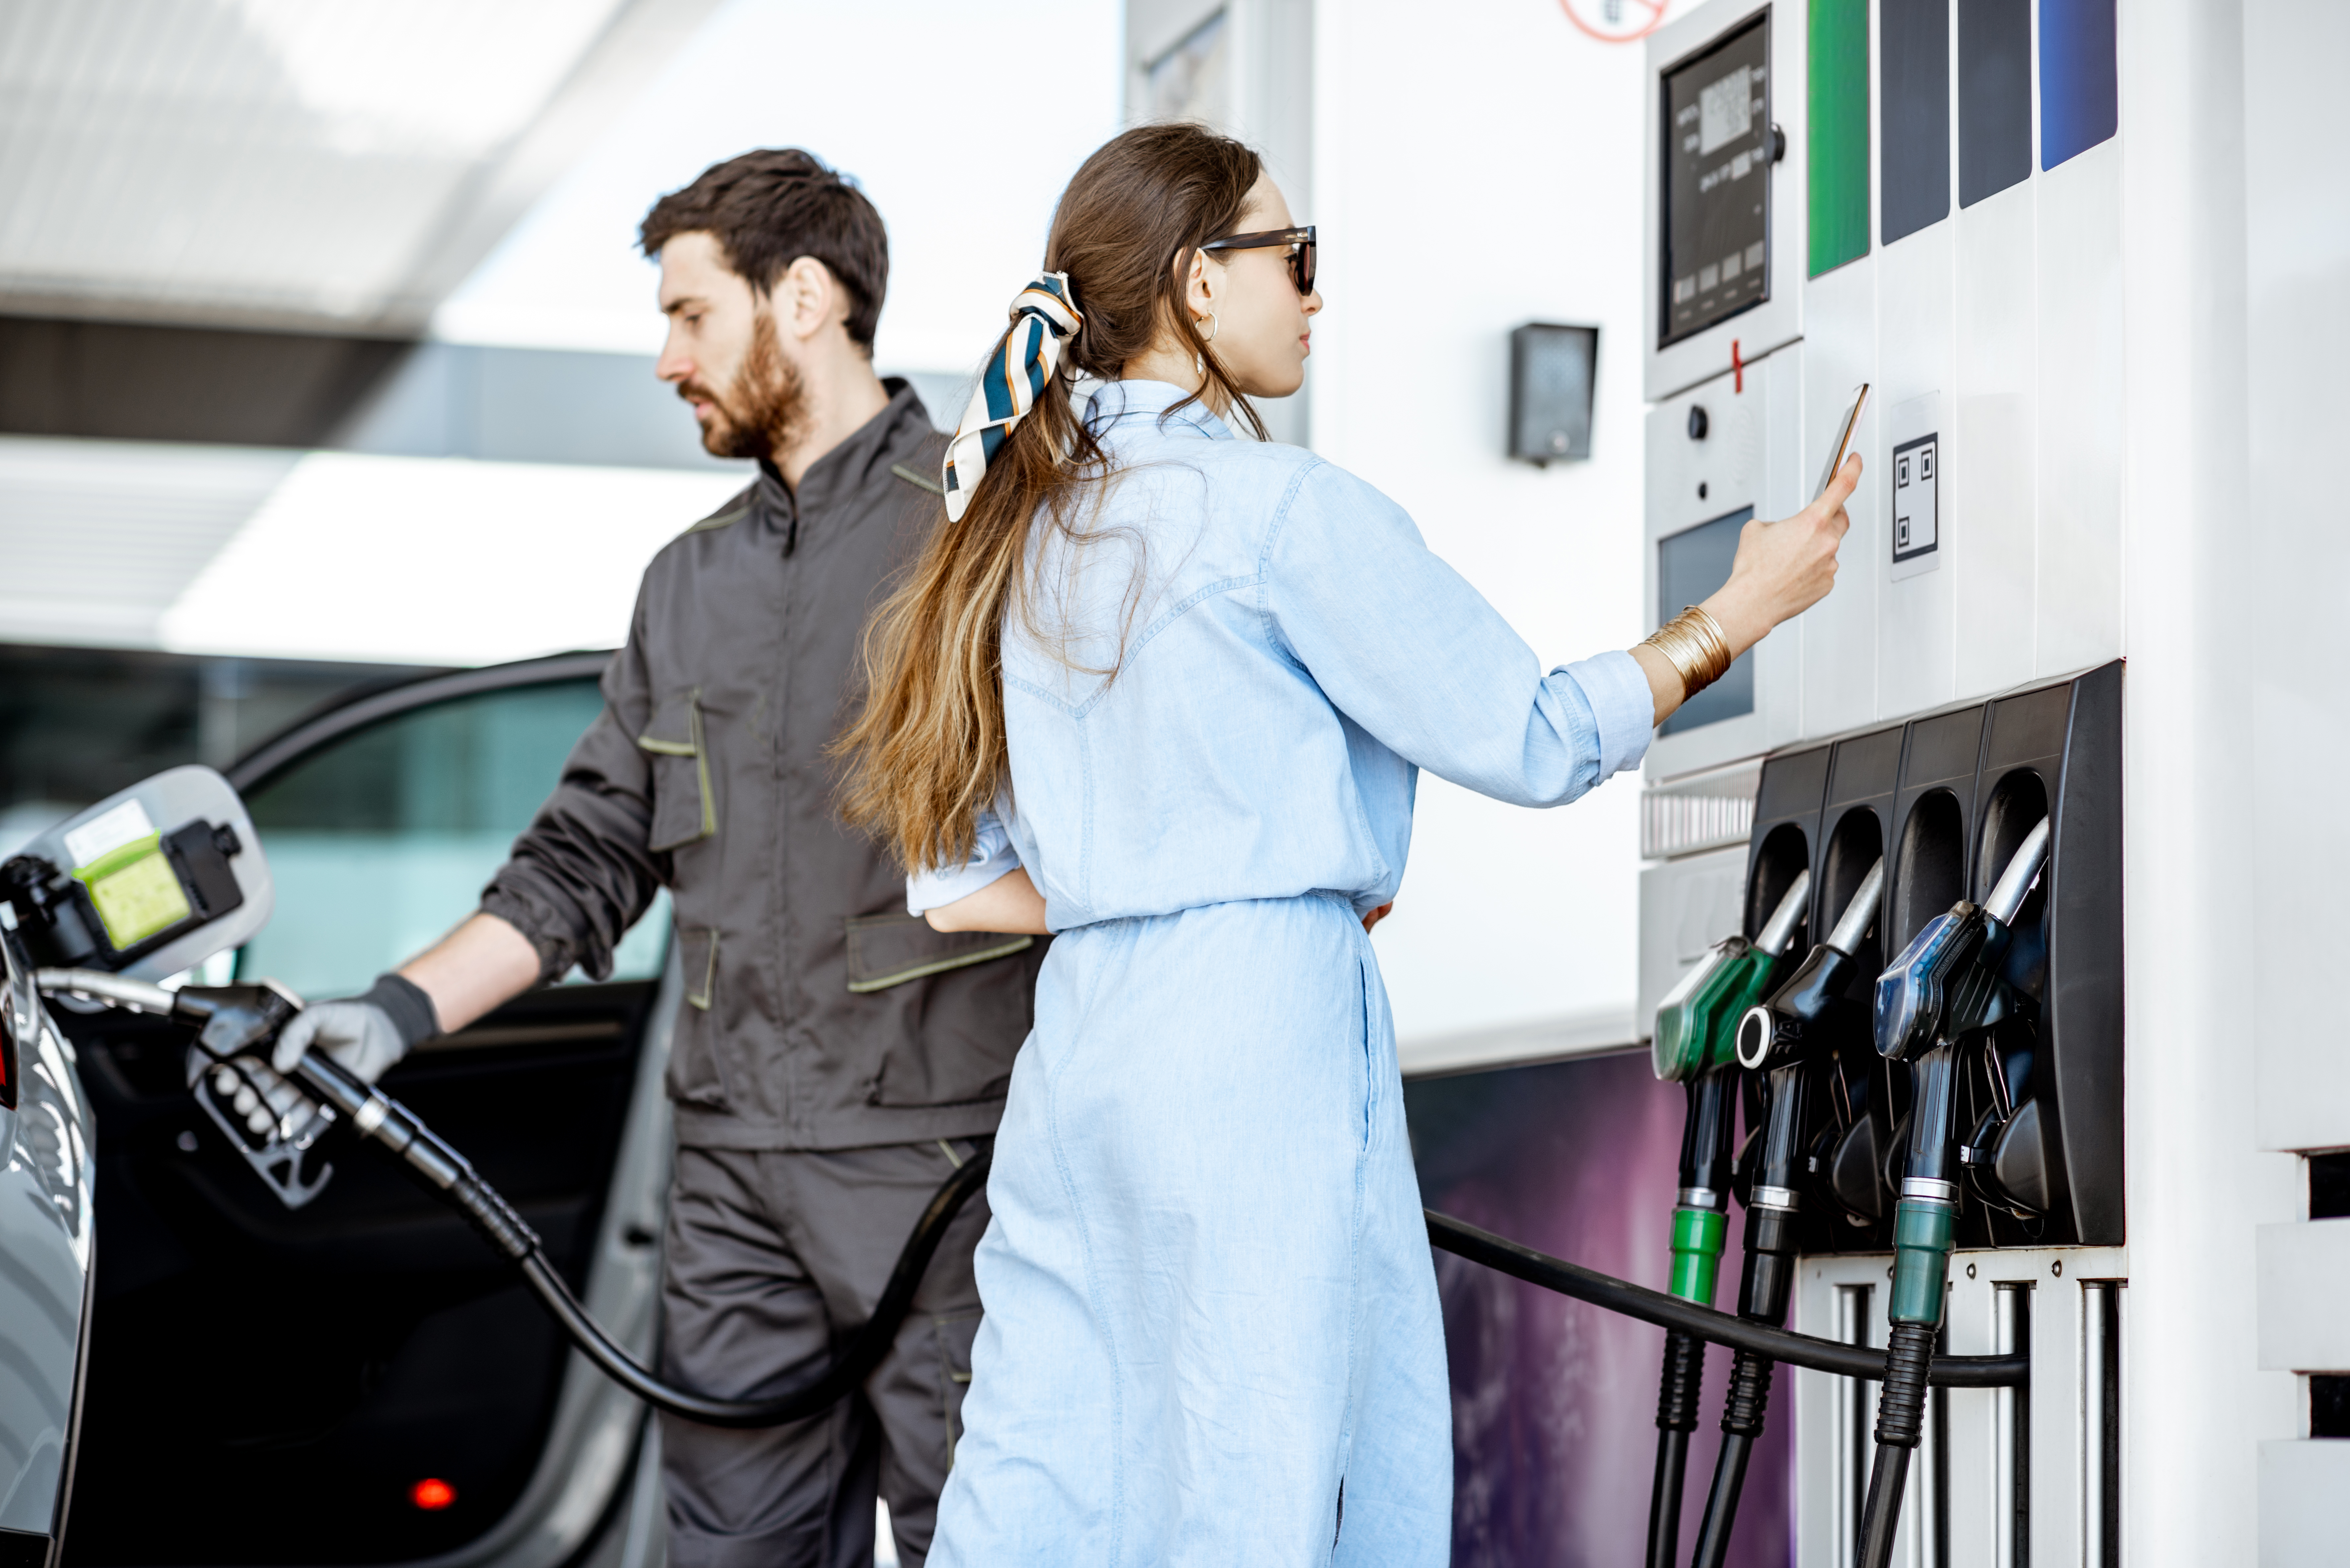 Woman paying with phone at the gas station